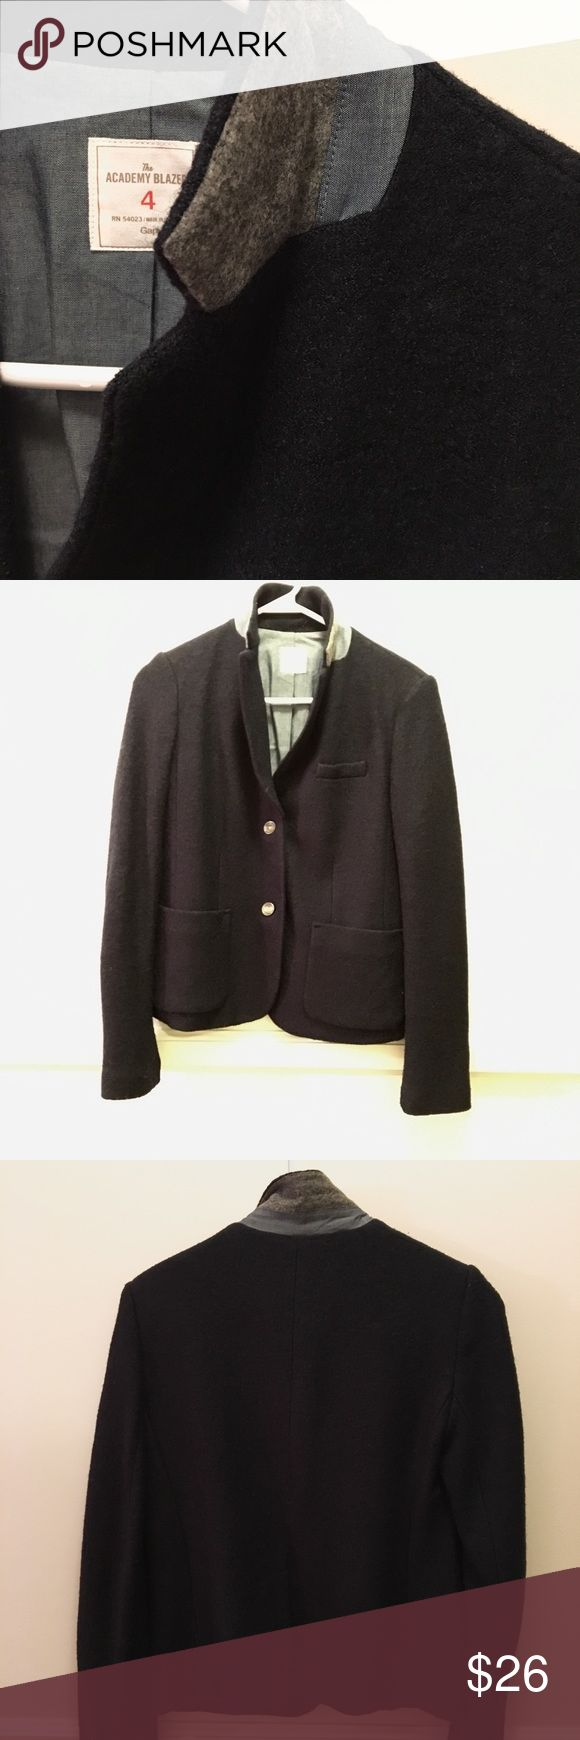 """Navy wool blazer Classic navy blue all wool blazer with contrasting cuff and collar. Size 4. Perfect condition. Worn by 5'7"""" at 130 lbs. GAP Jackets & Coats Blazers"""